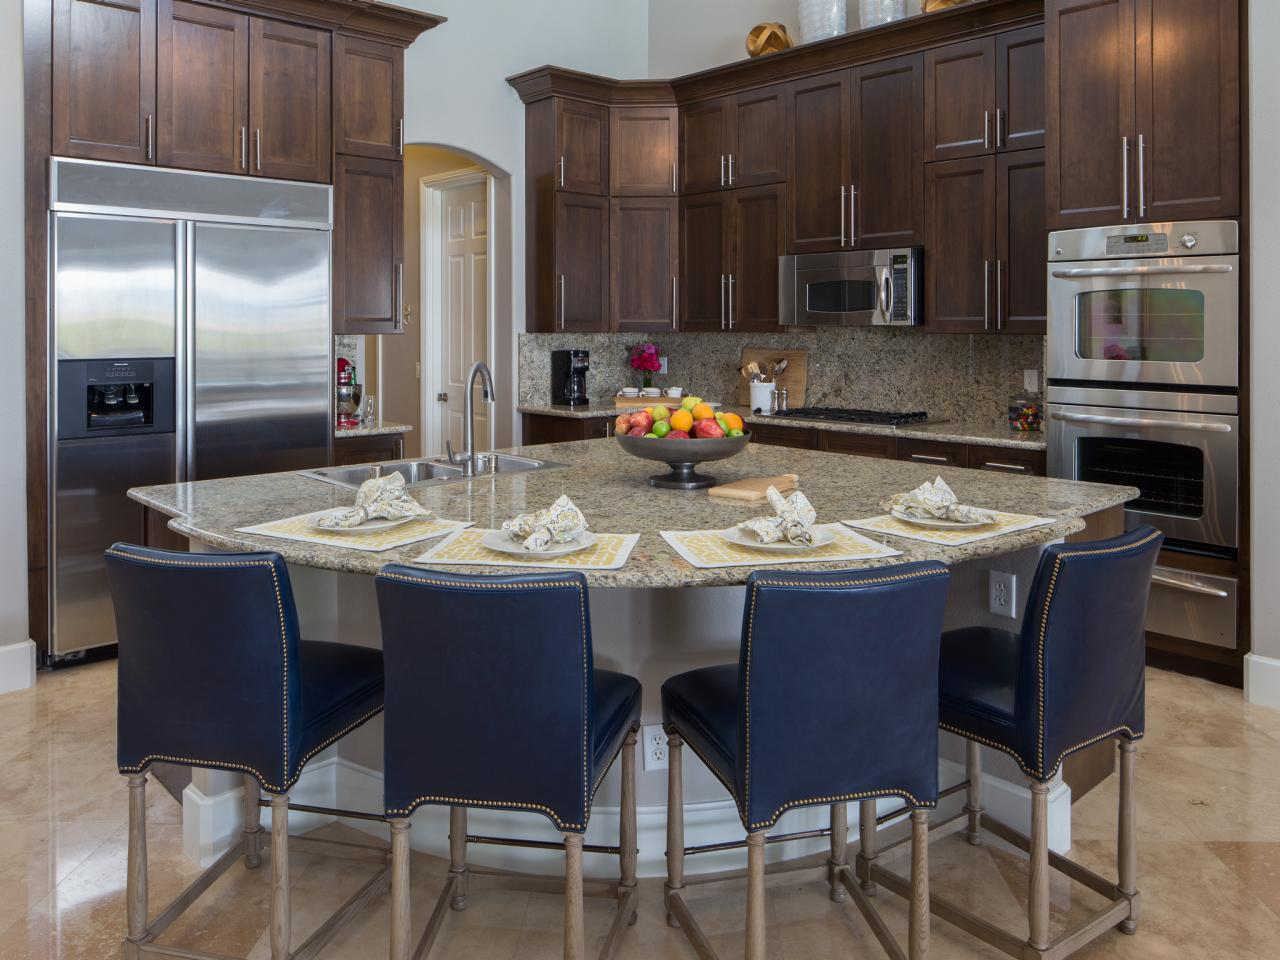 8 Key Considerations When Designing a Kitchen Island